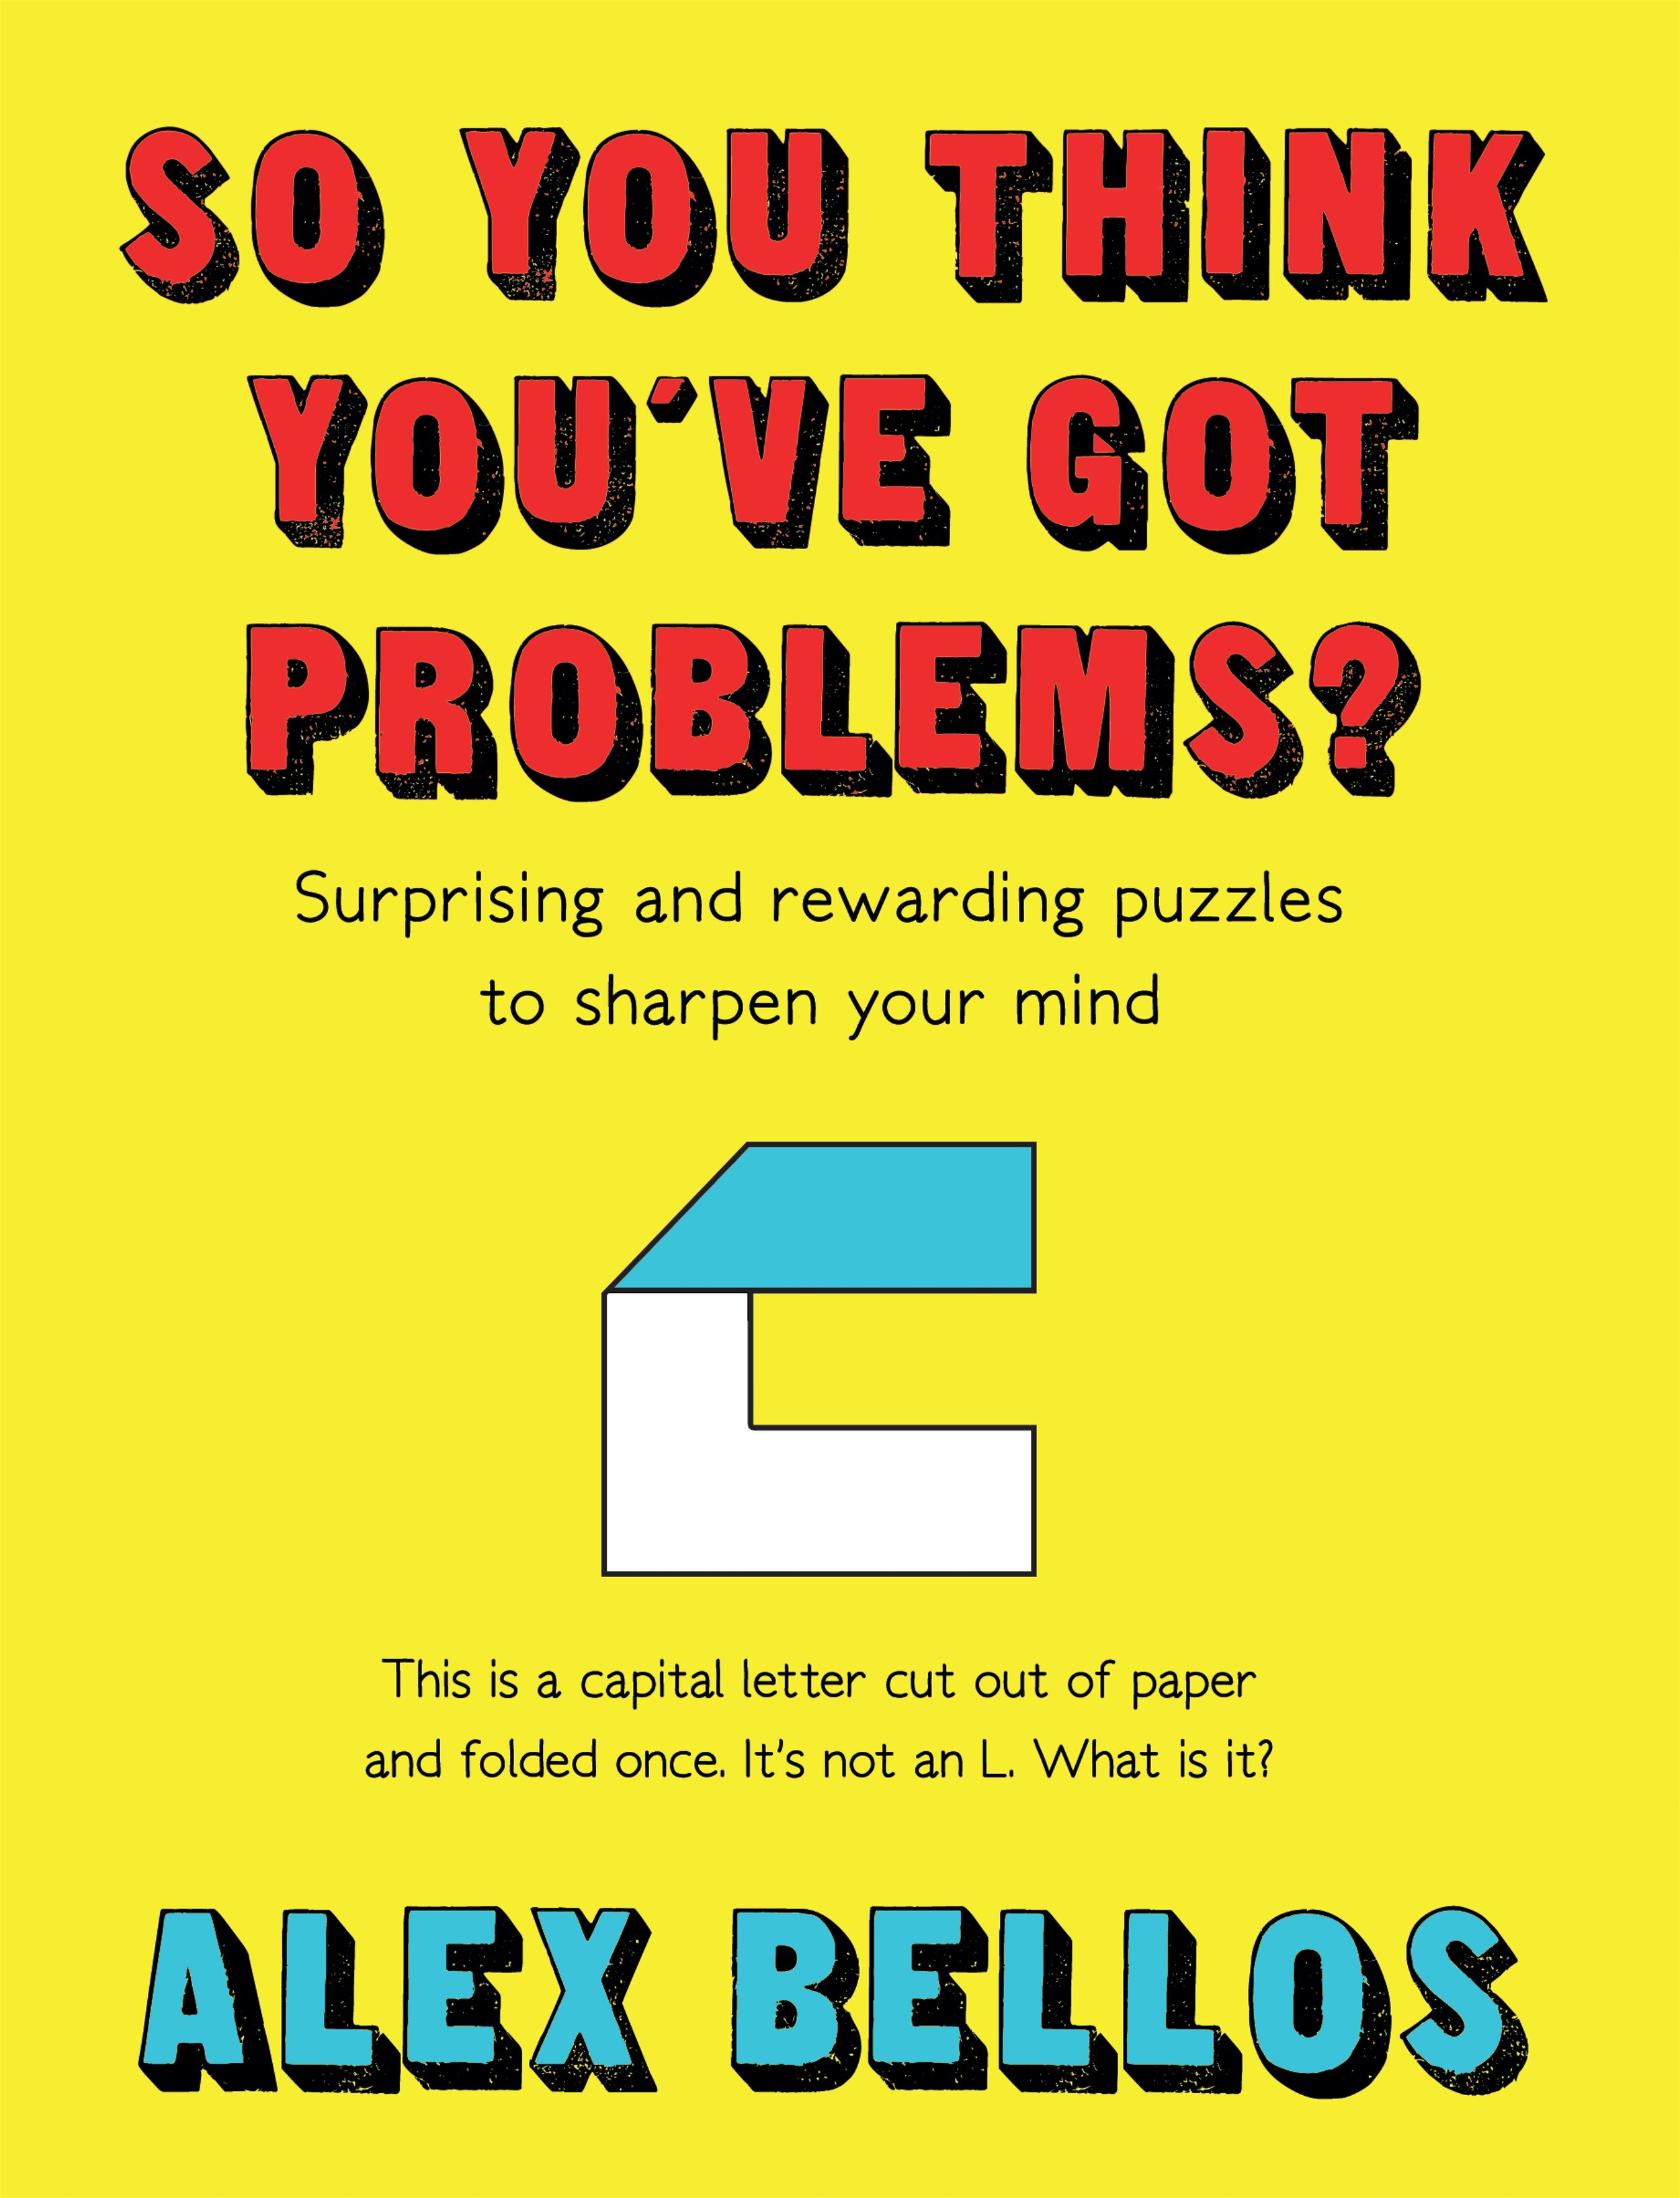 PUZZLE BOOK - More than 150 puzzles that showcase the wonderful diversity of brainteasers that have confounded and intrigued solvers for the last thousand years. Includes sections on wordplay, probability, geometry, escapology and much more.Publication date November 7, 2019